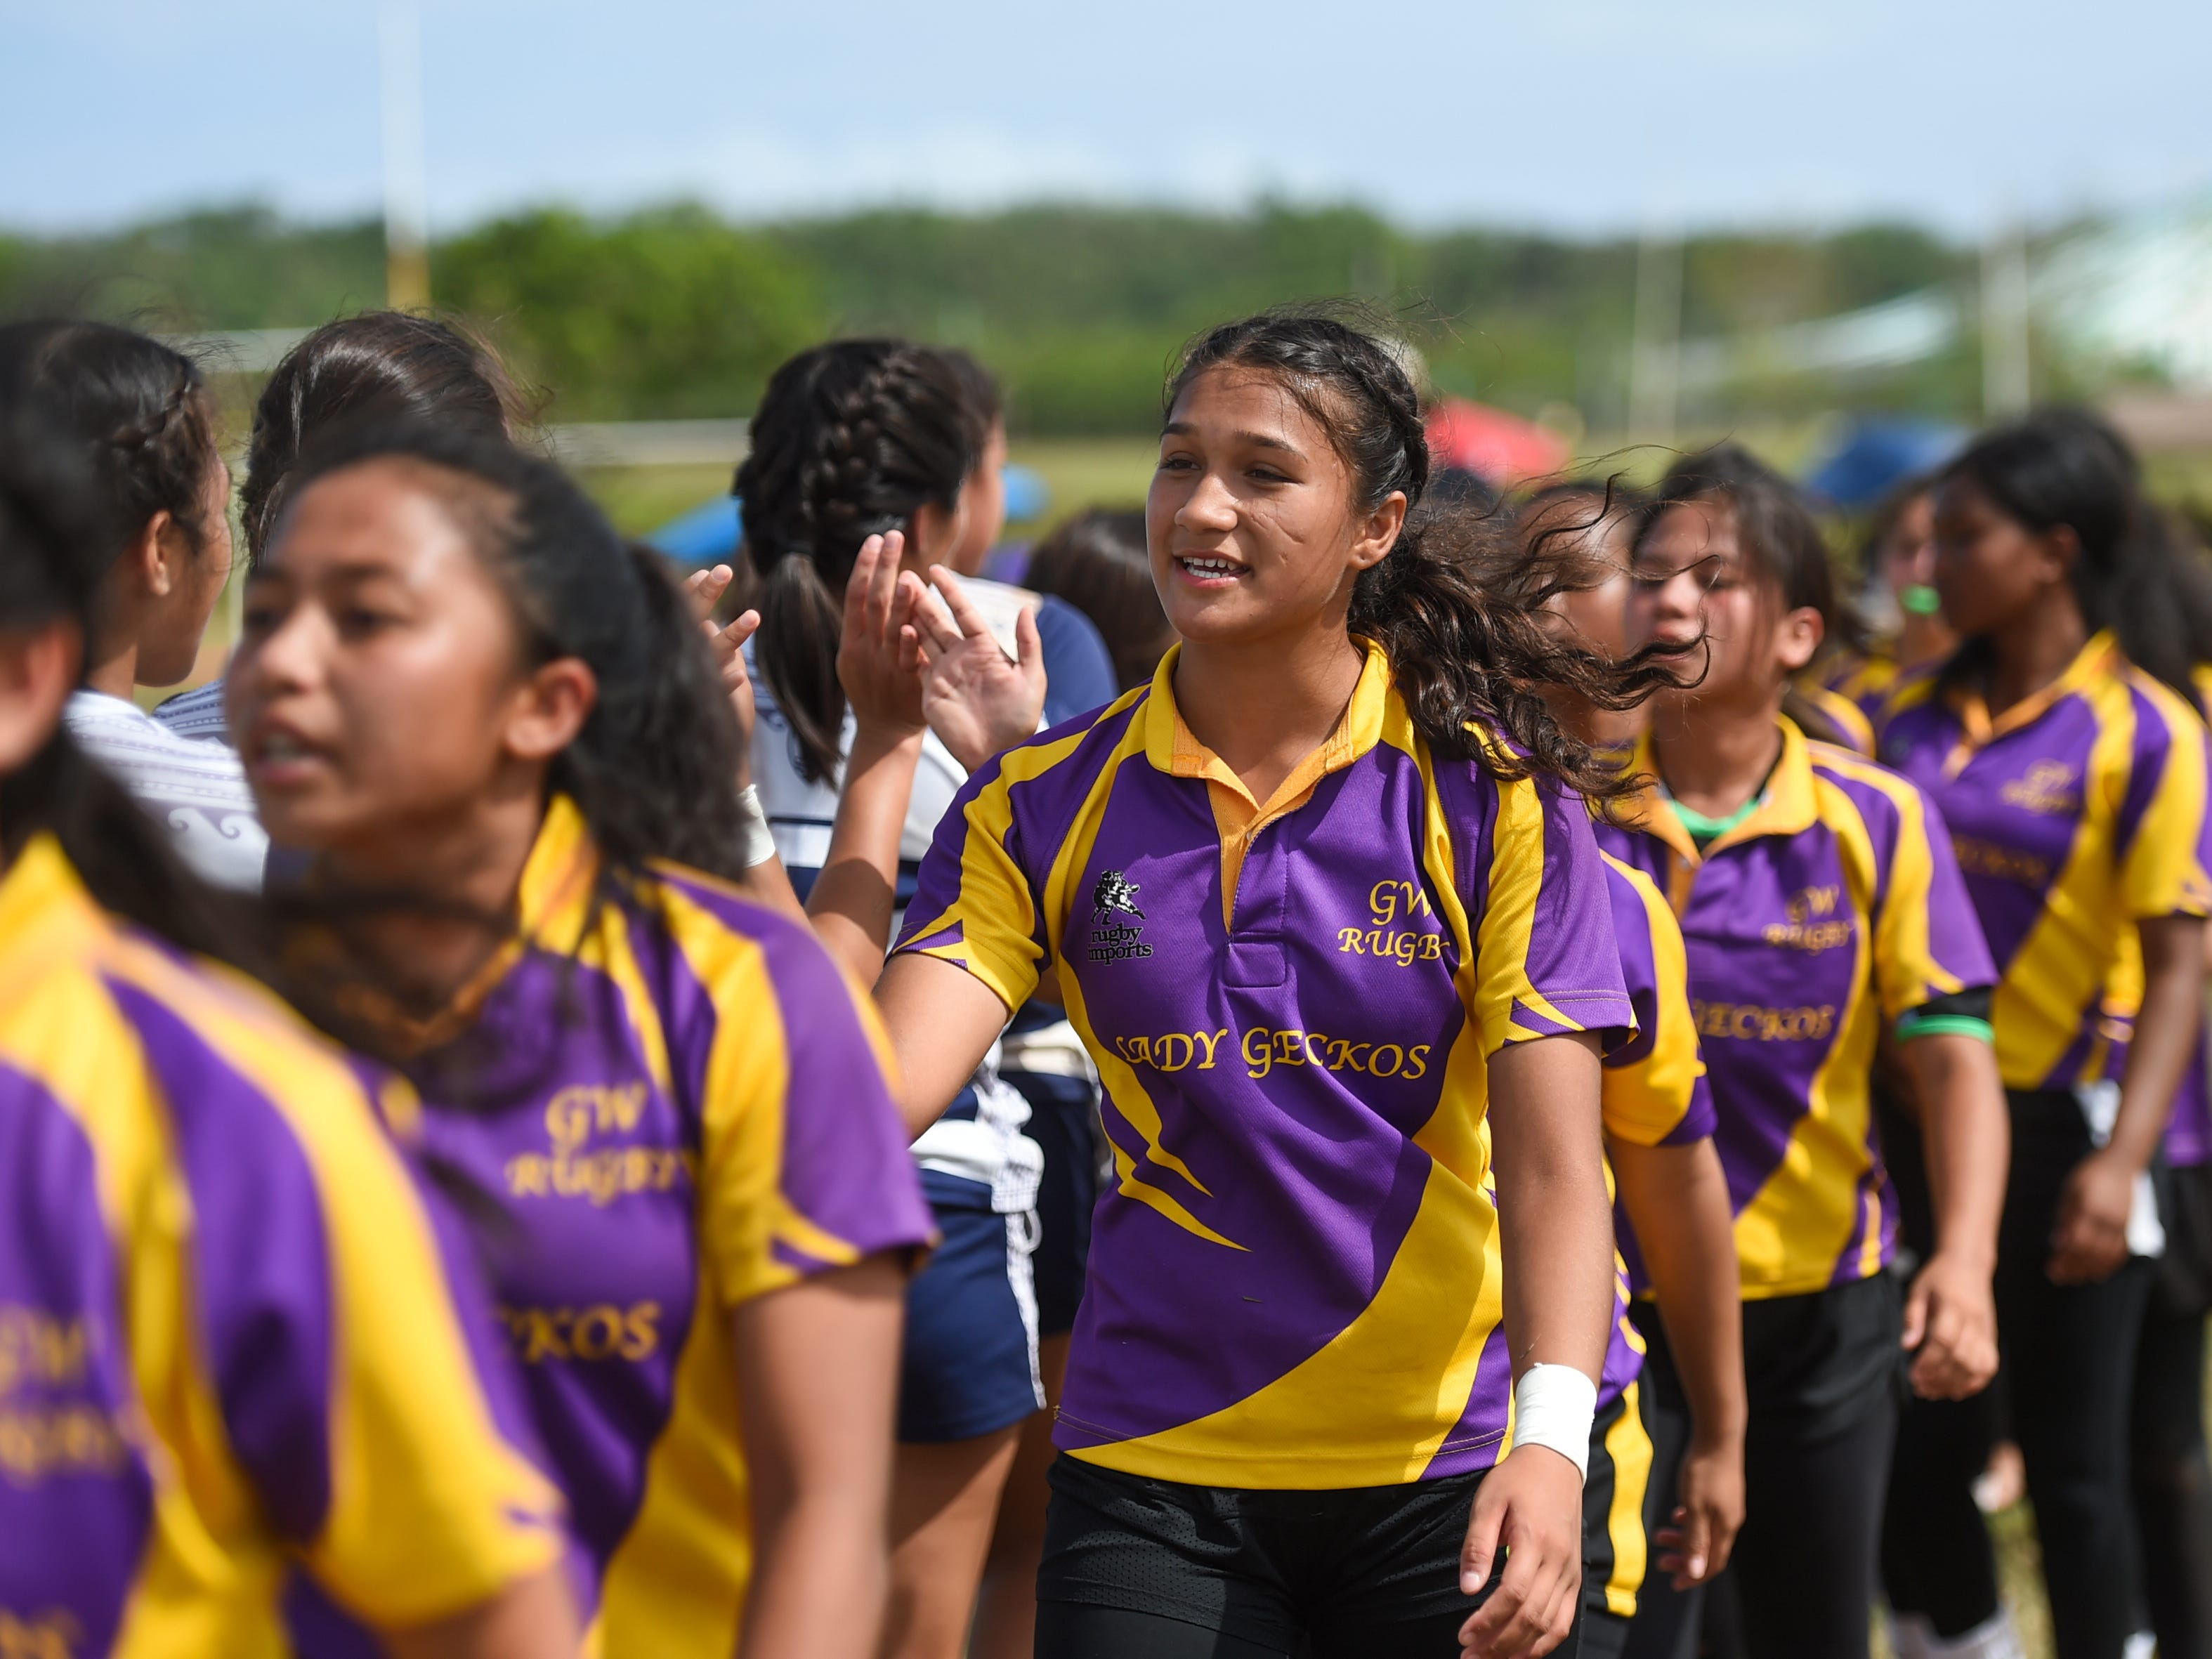 The Notre Dame Royals and George Washington Geckos shake hands following their GRFU/IIAAG Girls Rugby Finals game at the GW High School Field in Mangilao, March 16, 2019.